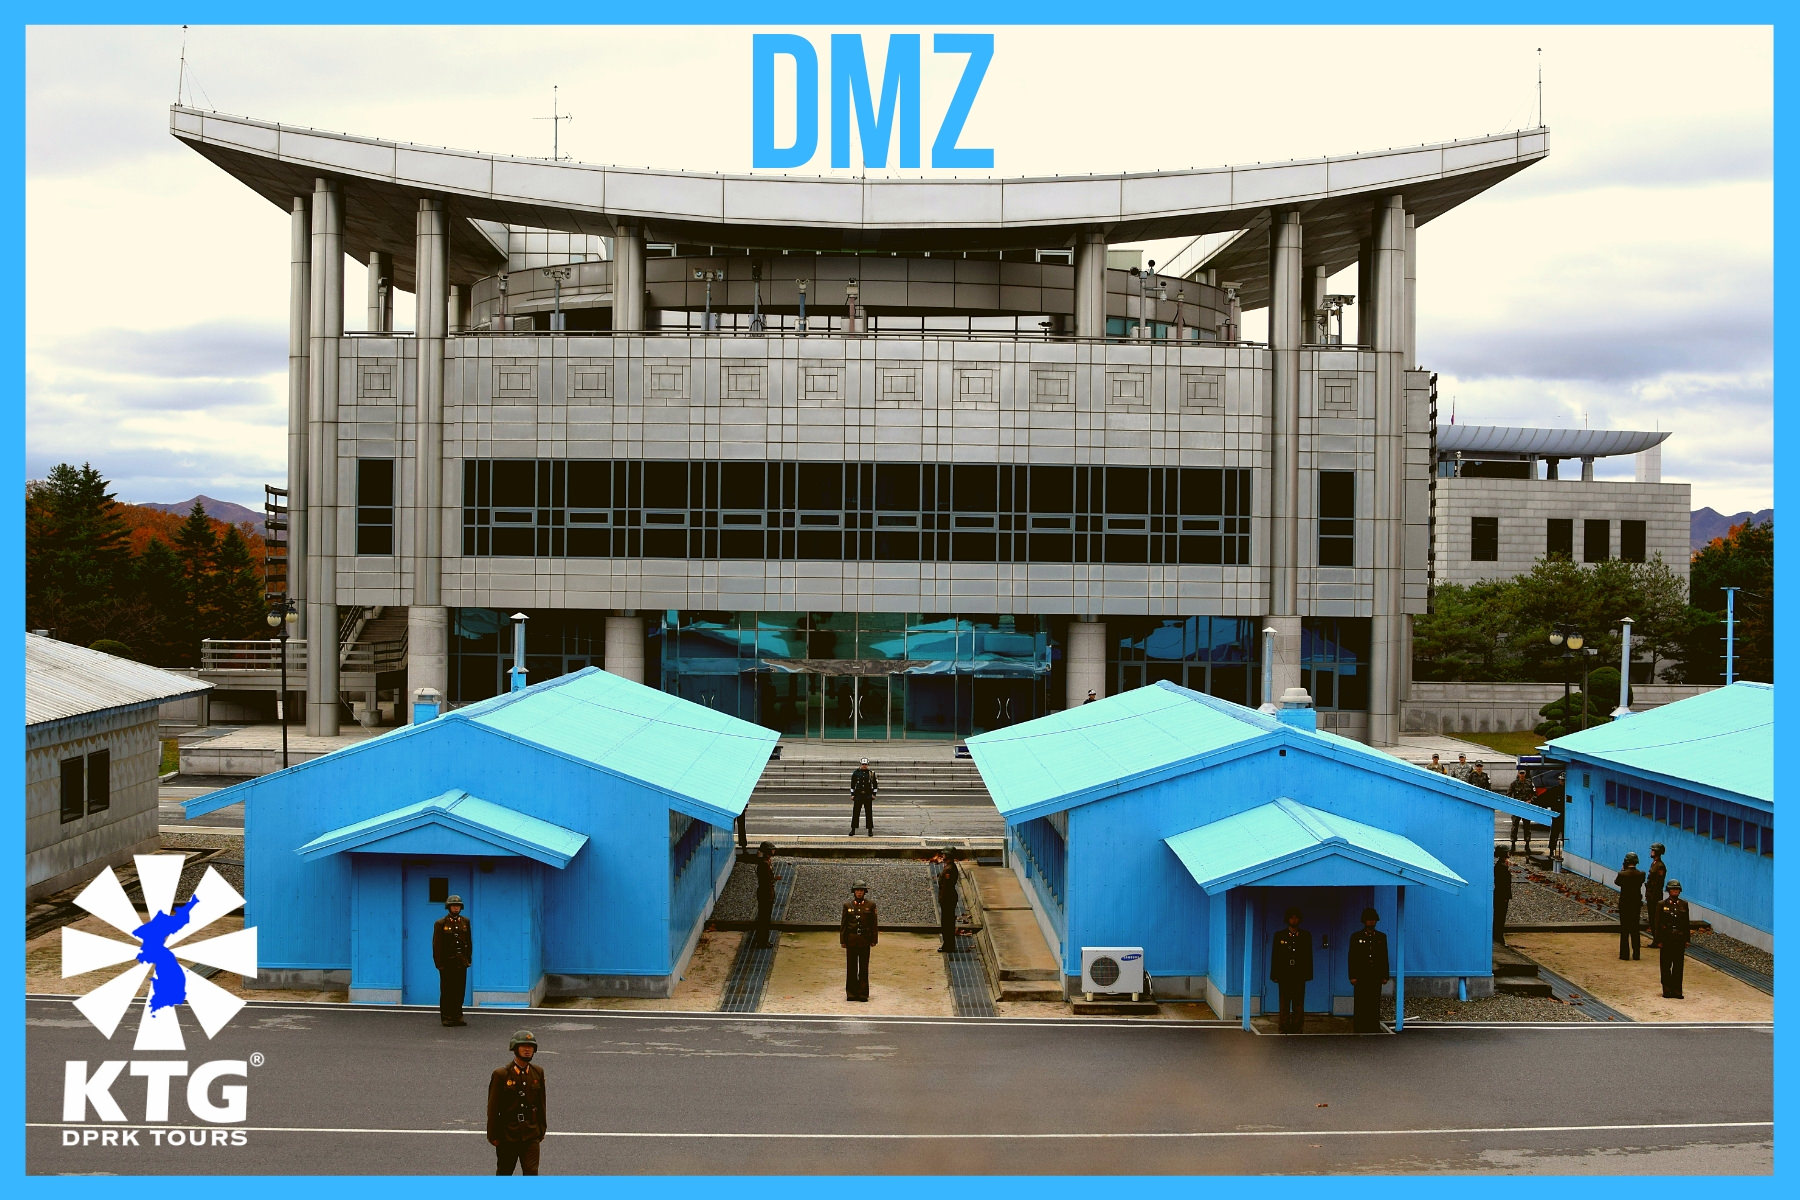 DMZ negotiation rooms in North Korea and South Korea, Panmunjom